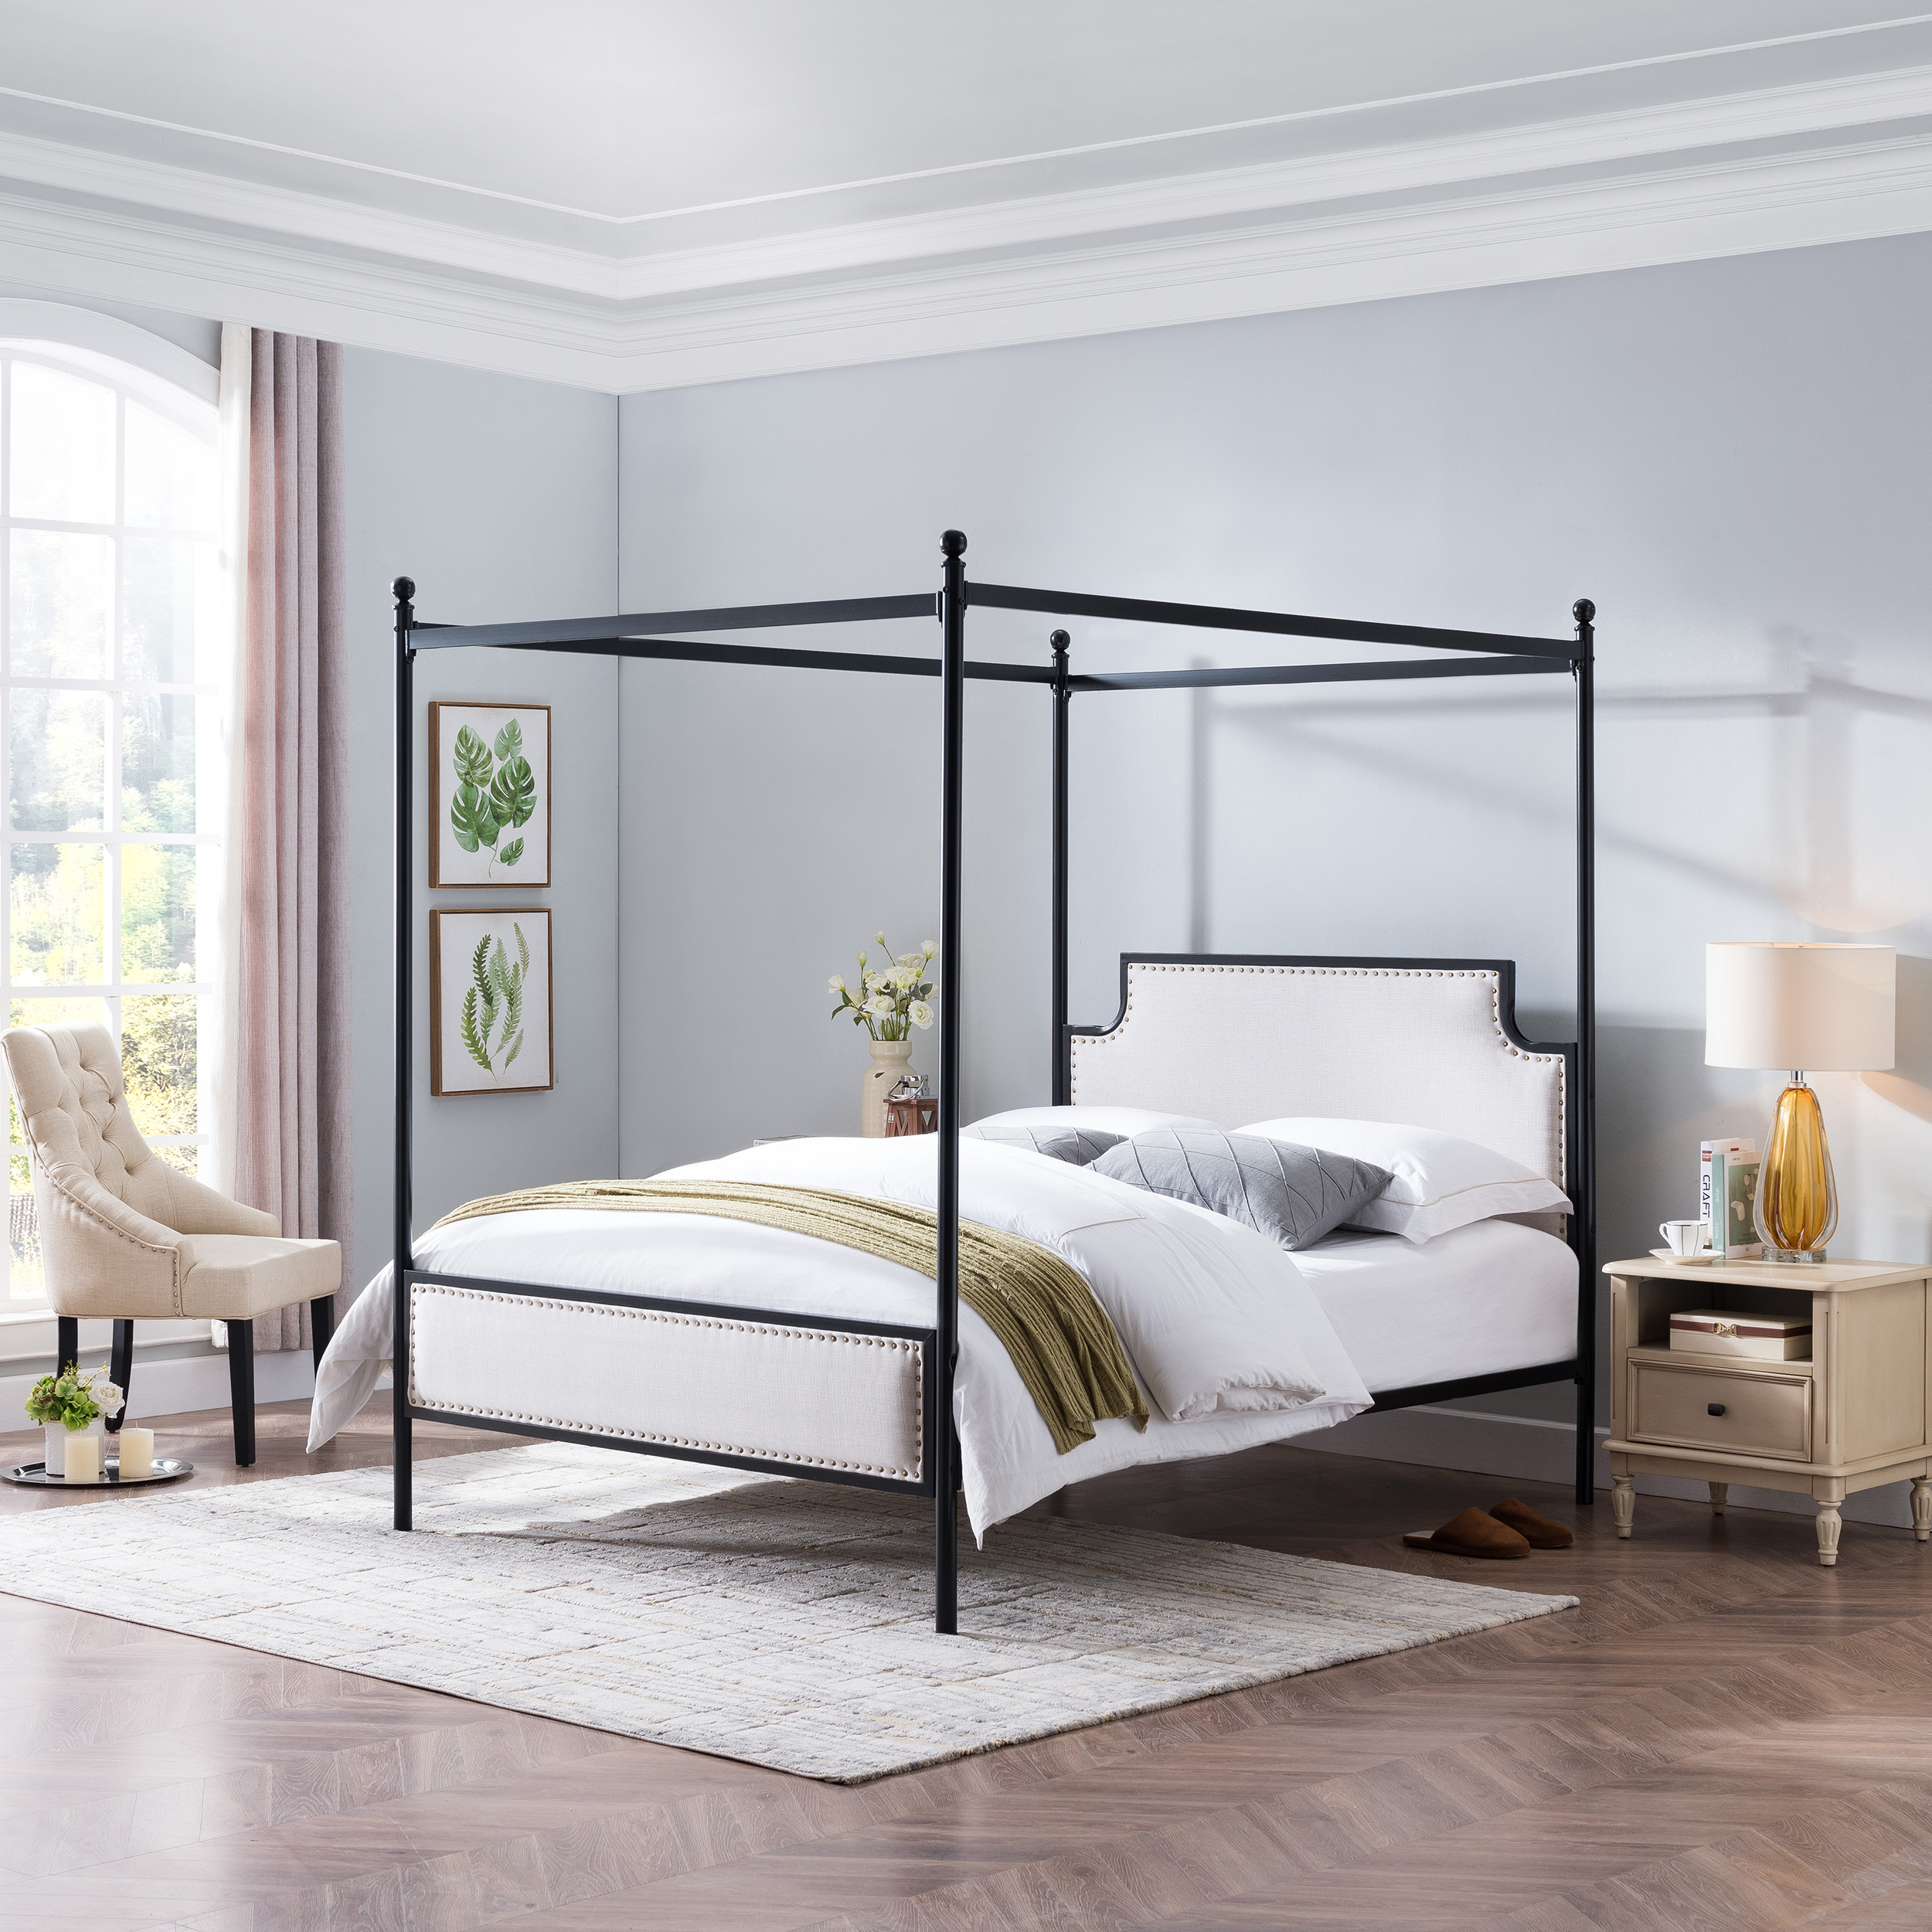 Asa Queen Size Iron Canopy Bed Frame With Upholstered Studded Headboard Beige And Flat Black Walmart Com Walmart Com